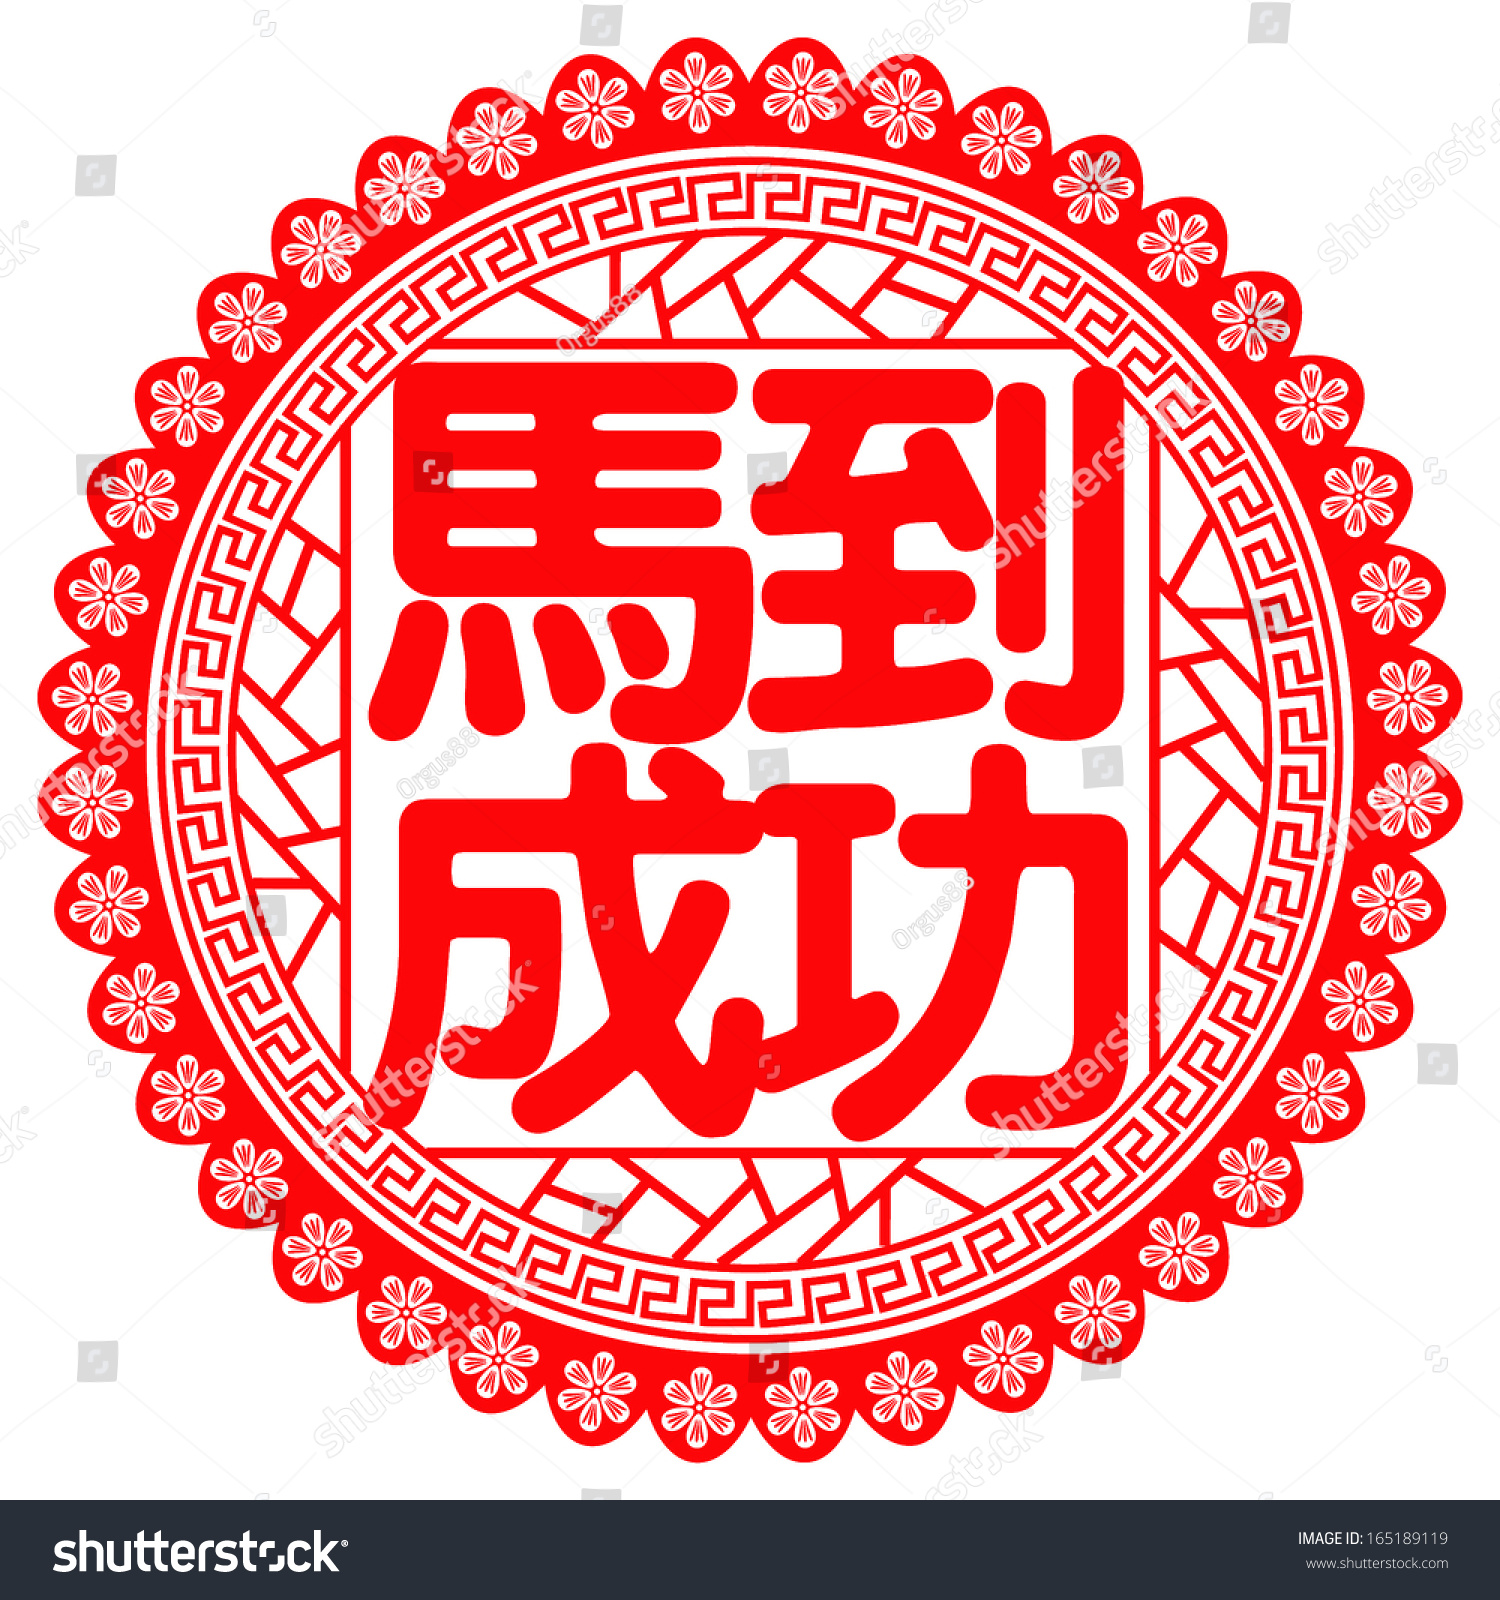 Chinese paper cut out horse symbol stock vector 165189119 chinese paper cut out horse as symbol of 2014 mean horse zodiac reaches the works to buycottarizona